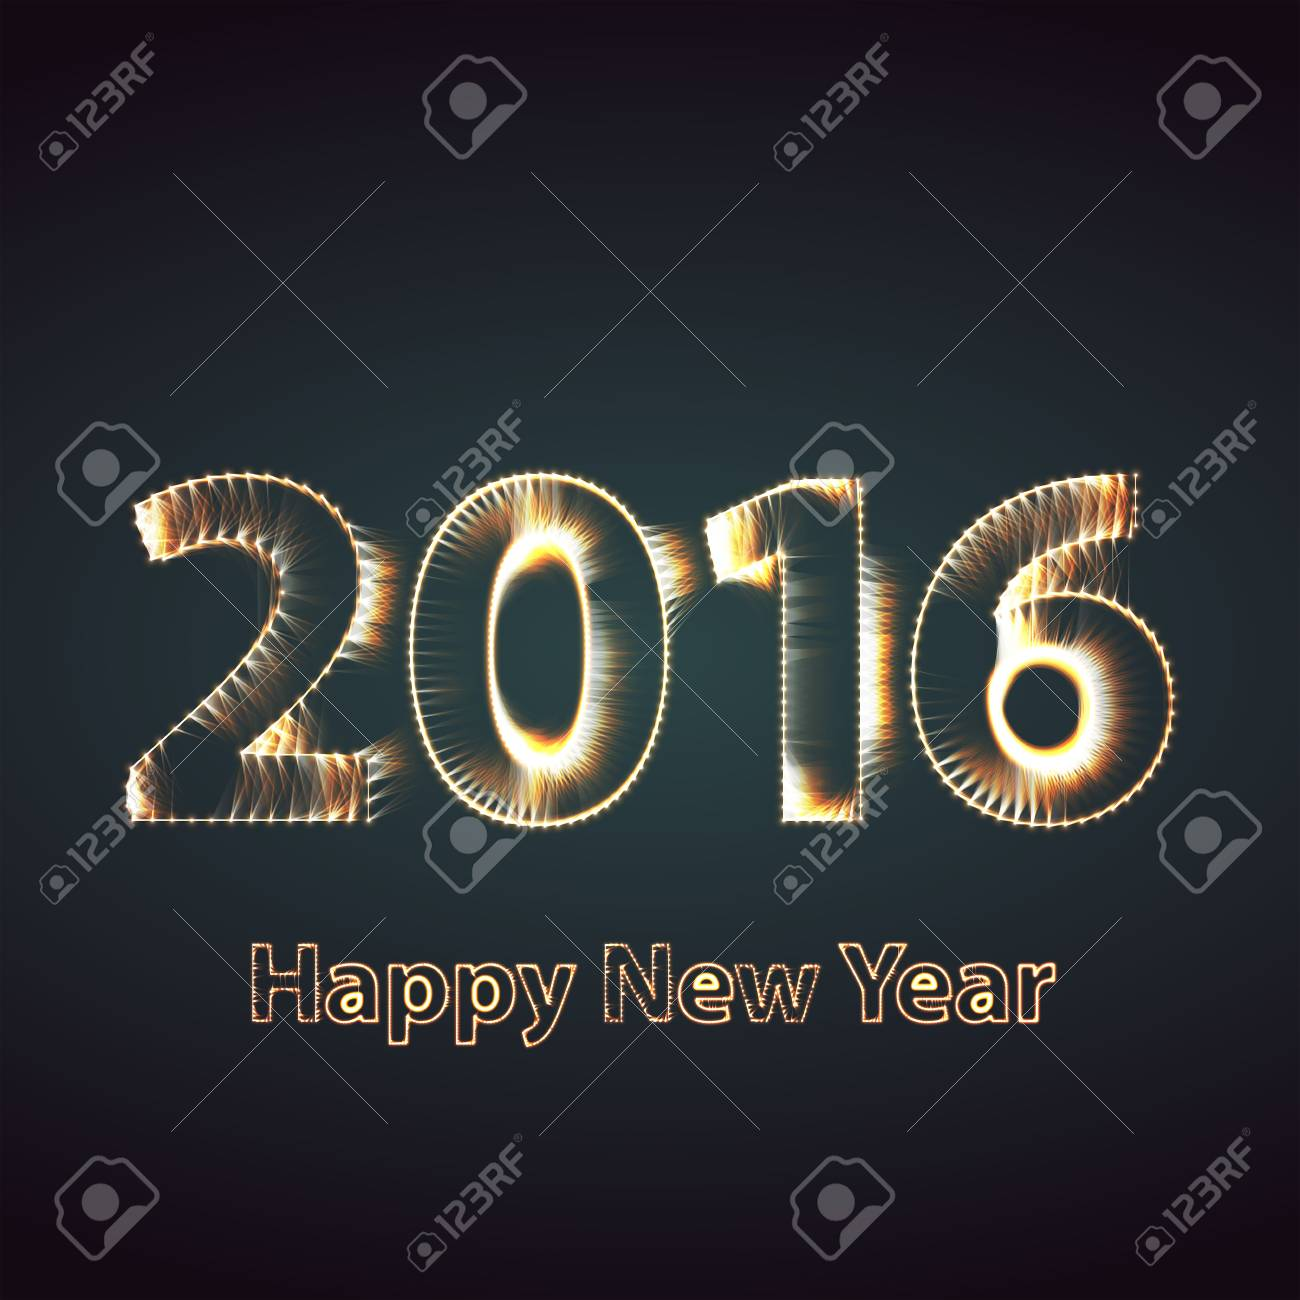 Happy New Year 2016 Creative Greeting Card Royalty Free Cliparts